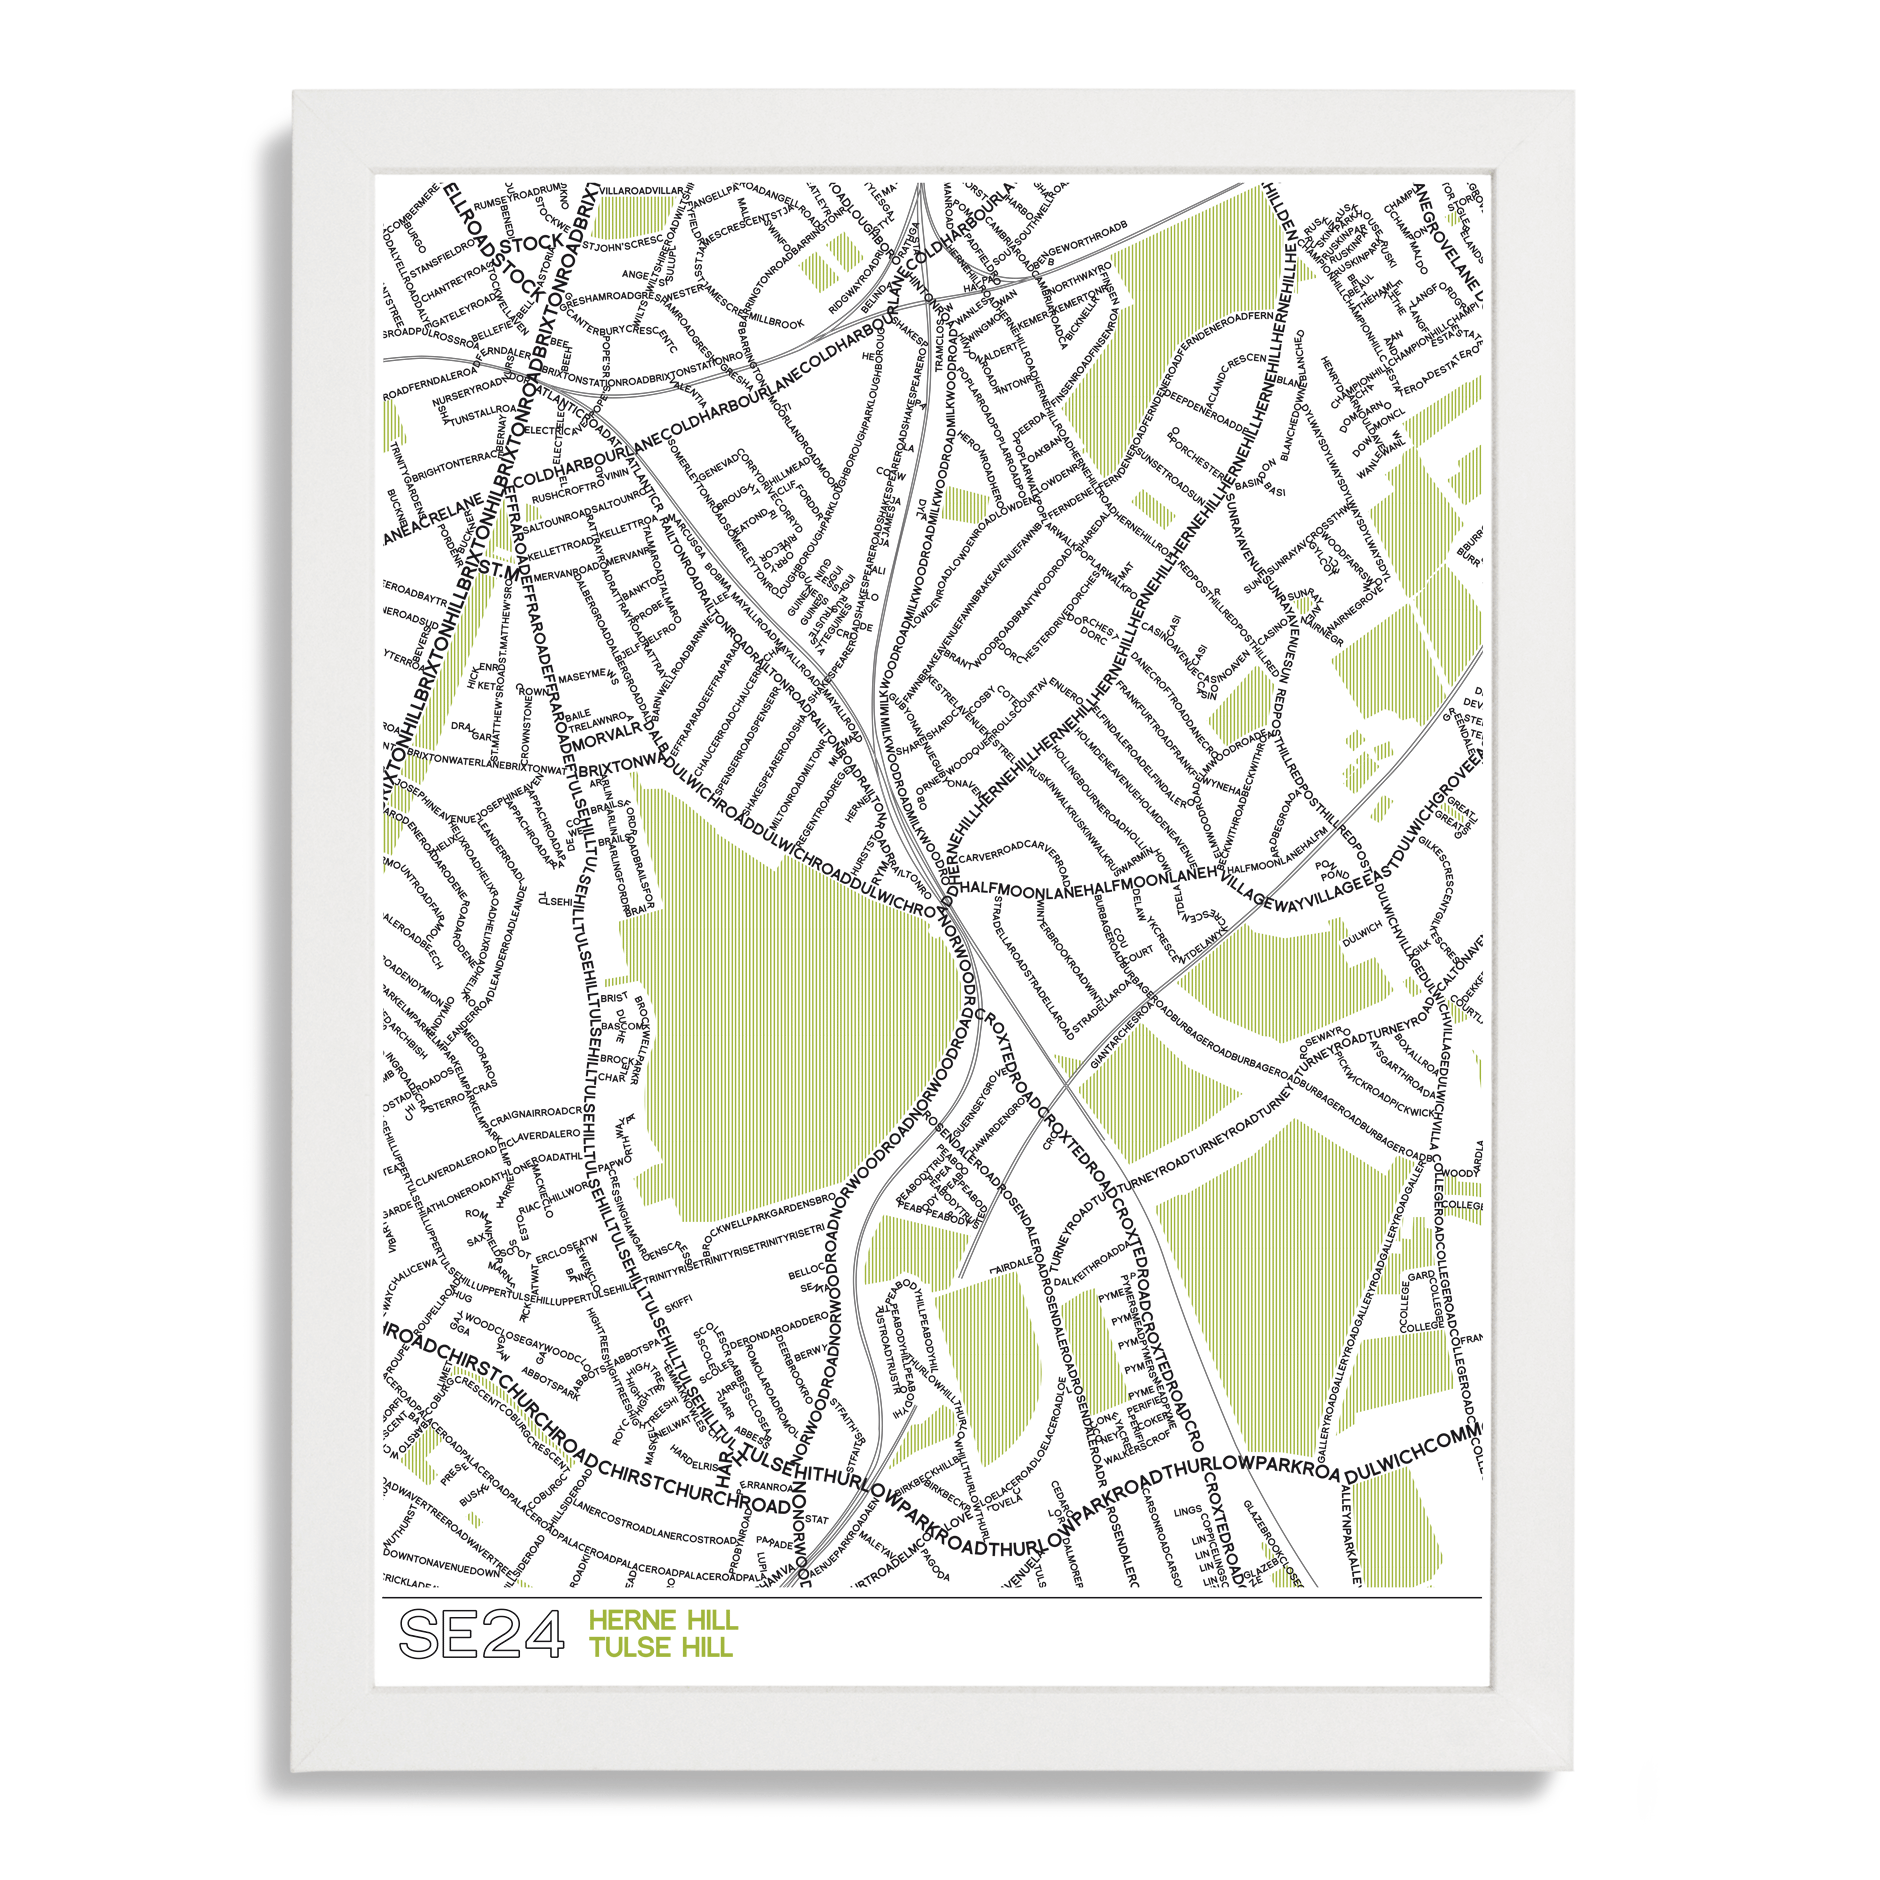 SE24 Herne Hill Typographic Map Art Poster Print